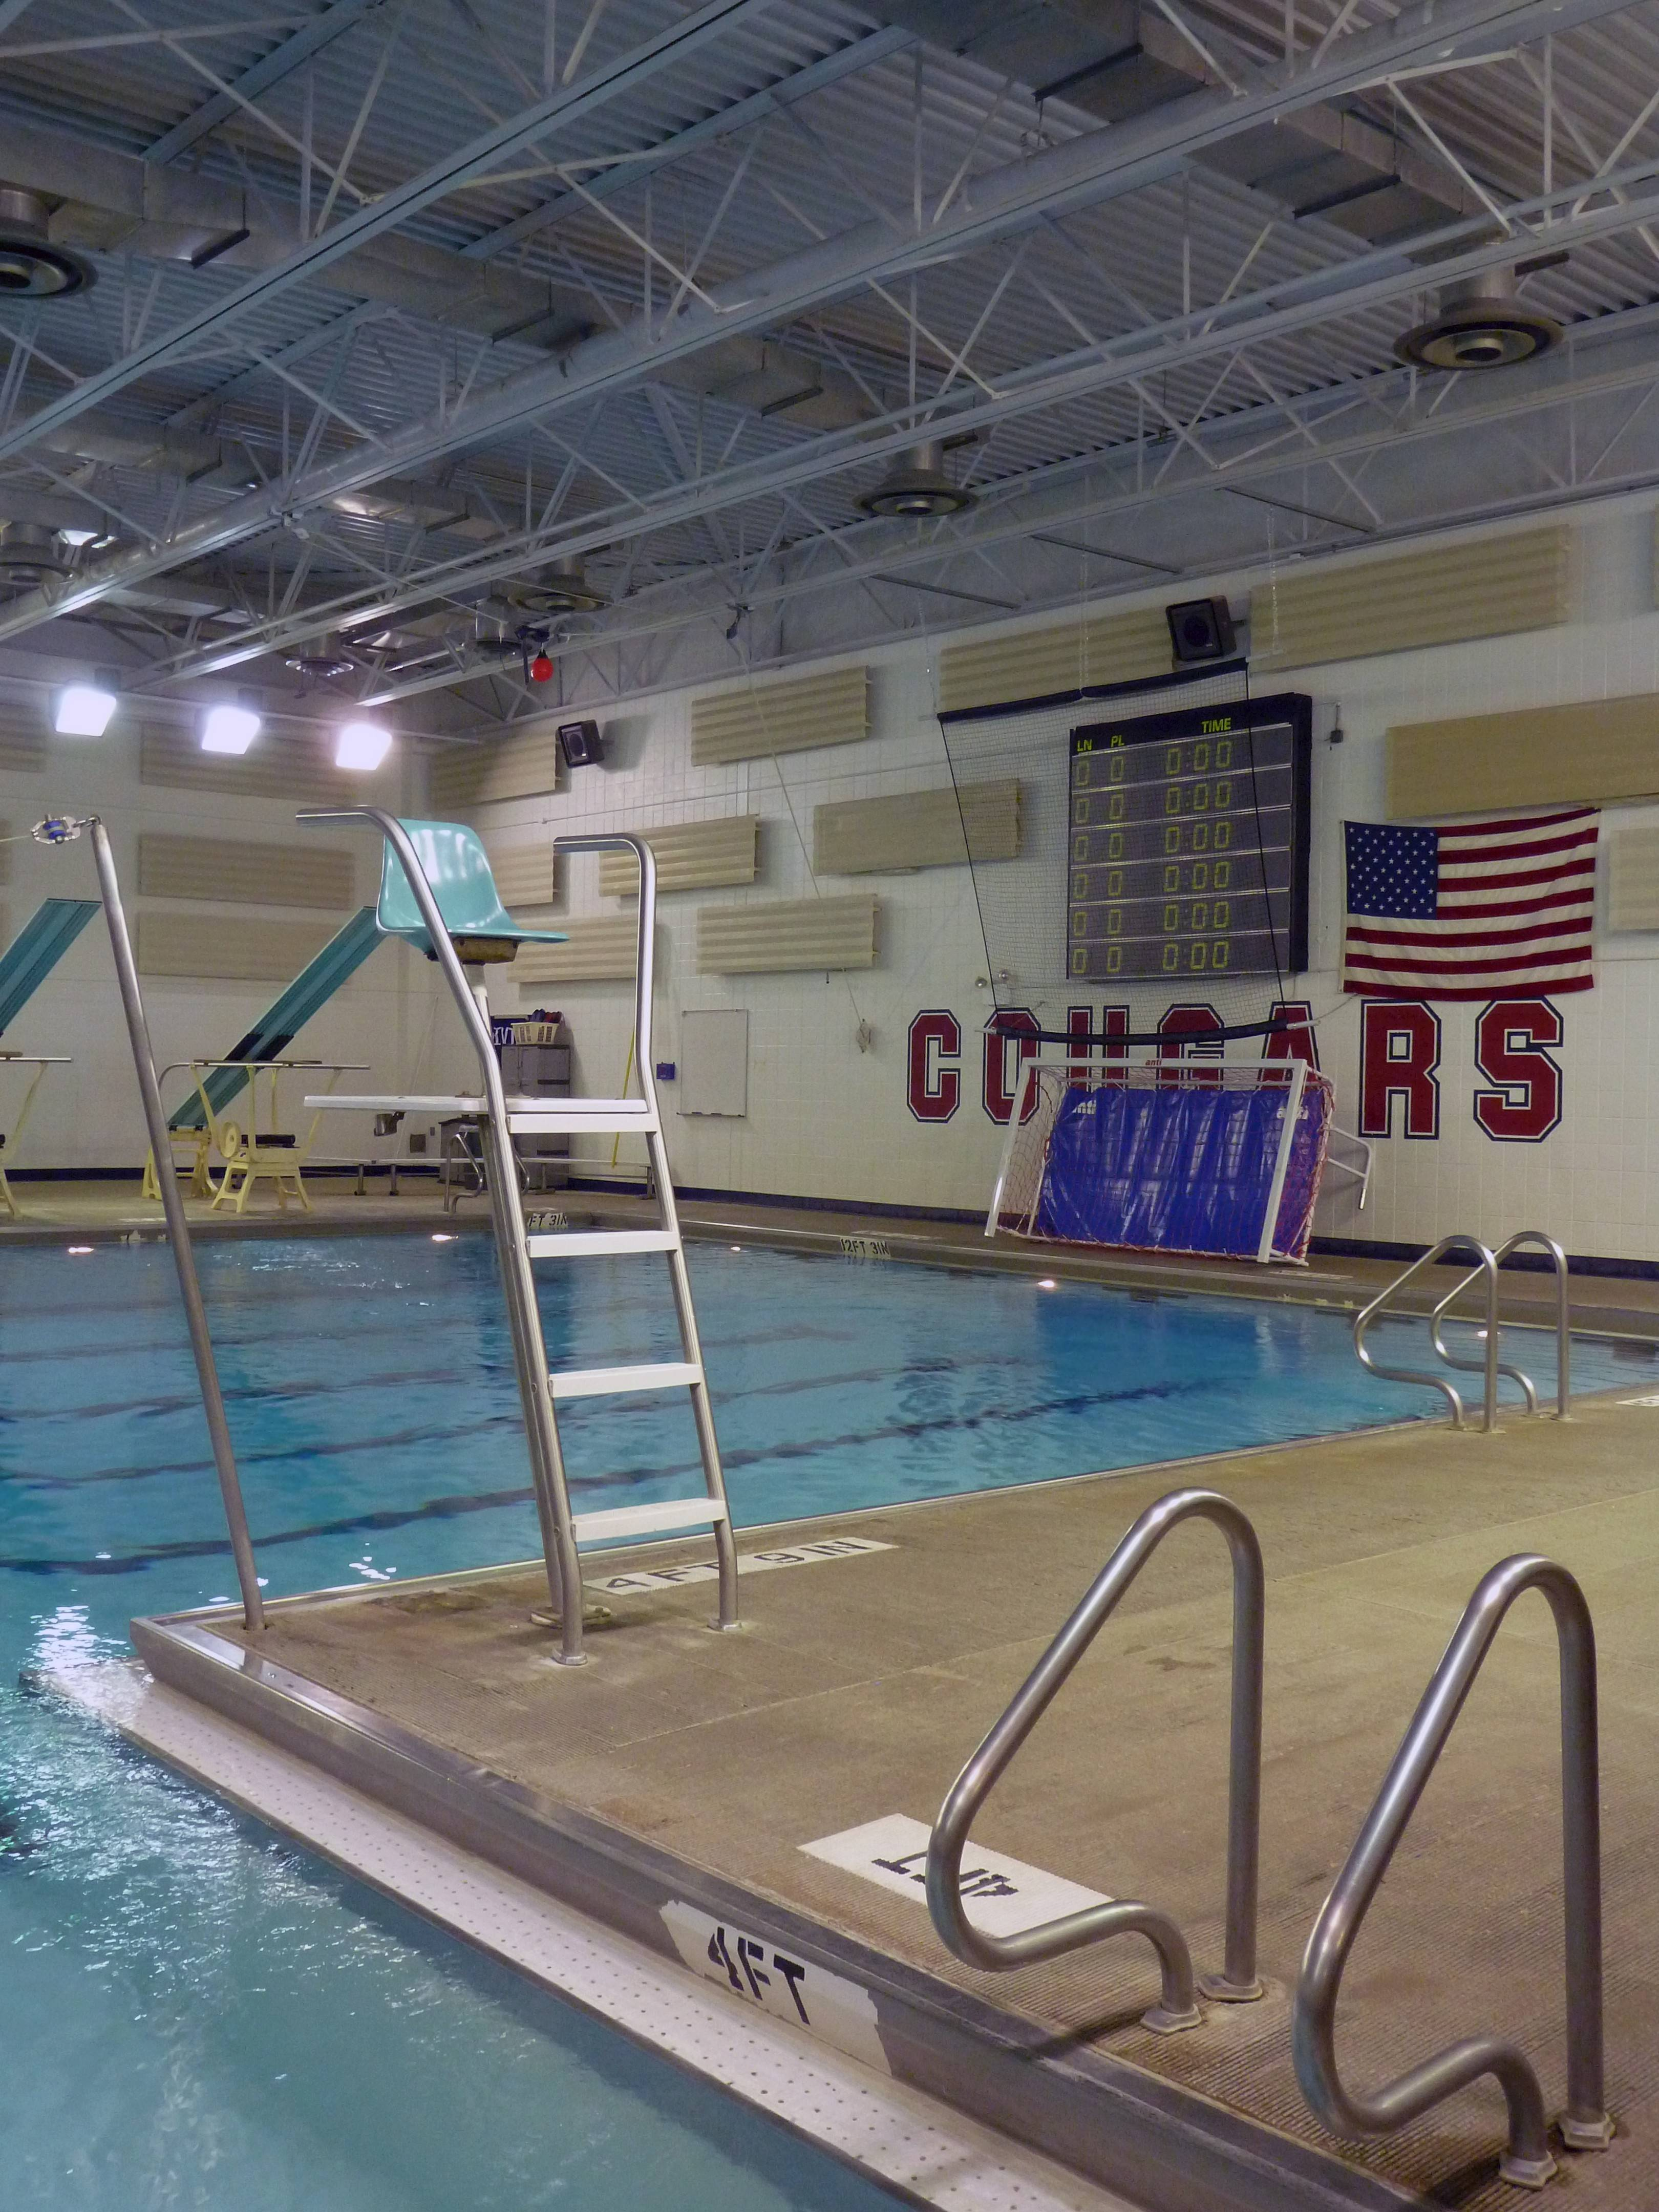 This is a right angle view of the pool at Conant High School, which will be the first of District 211's five high schools to receive renovations. Coaches say the design, which is the same at all the schools, prevents athletes from properly training for competition.